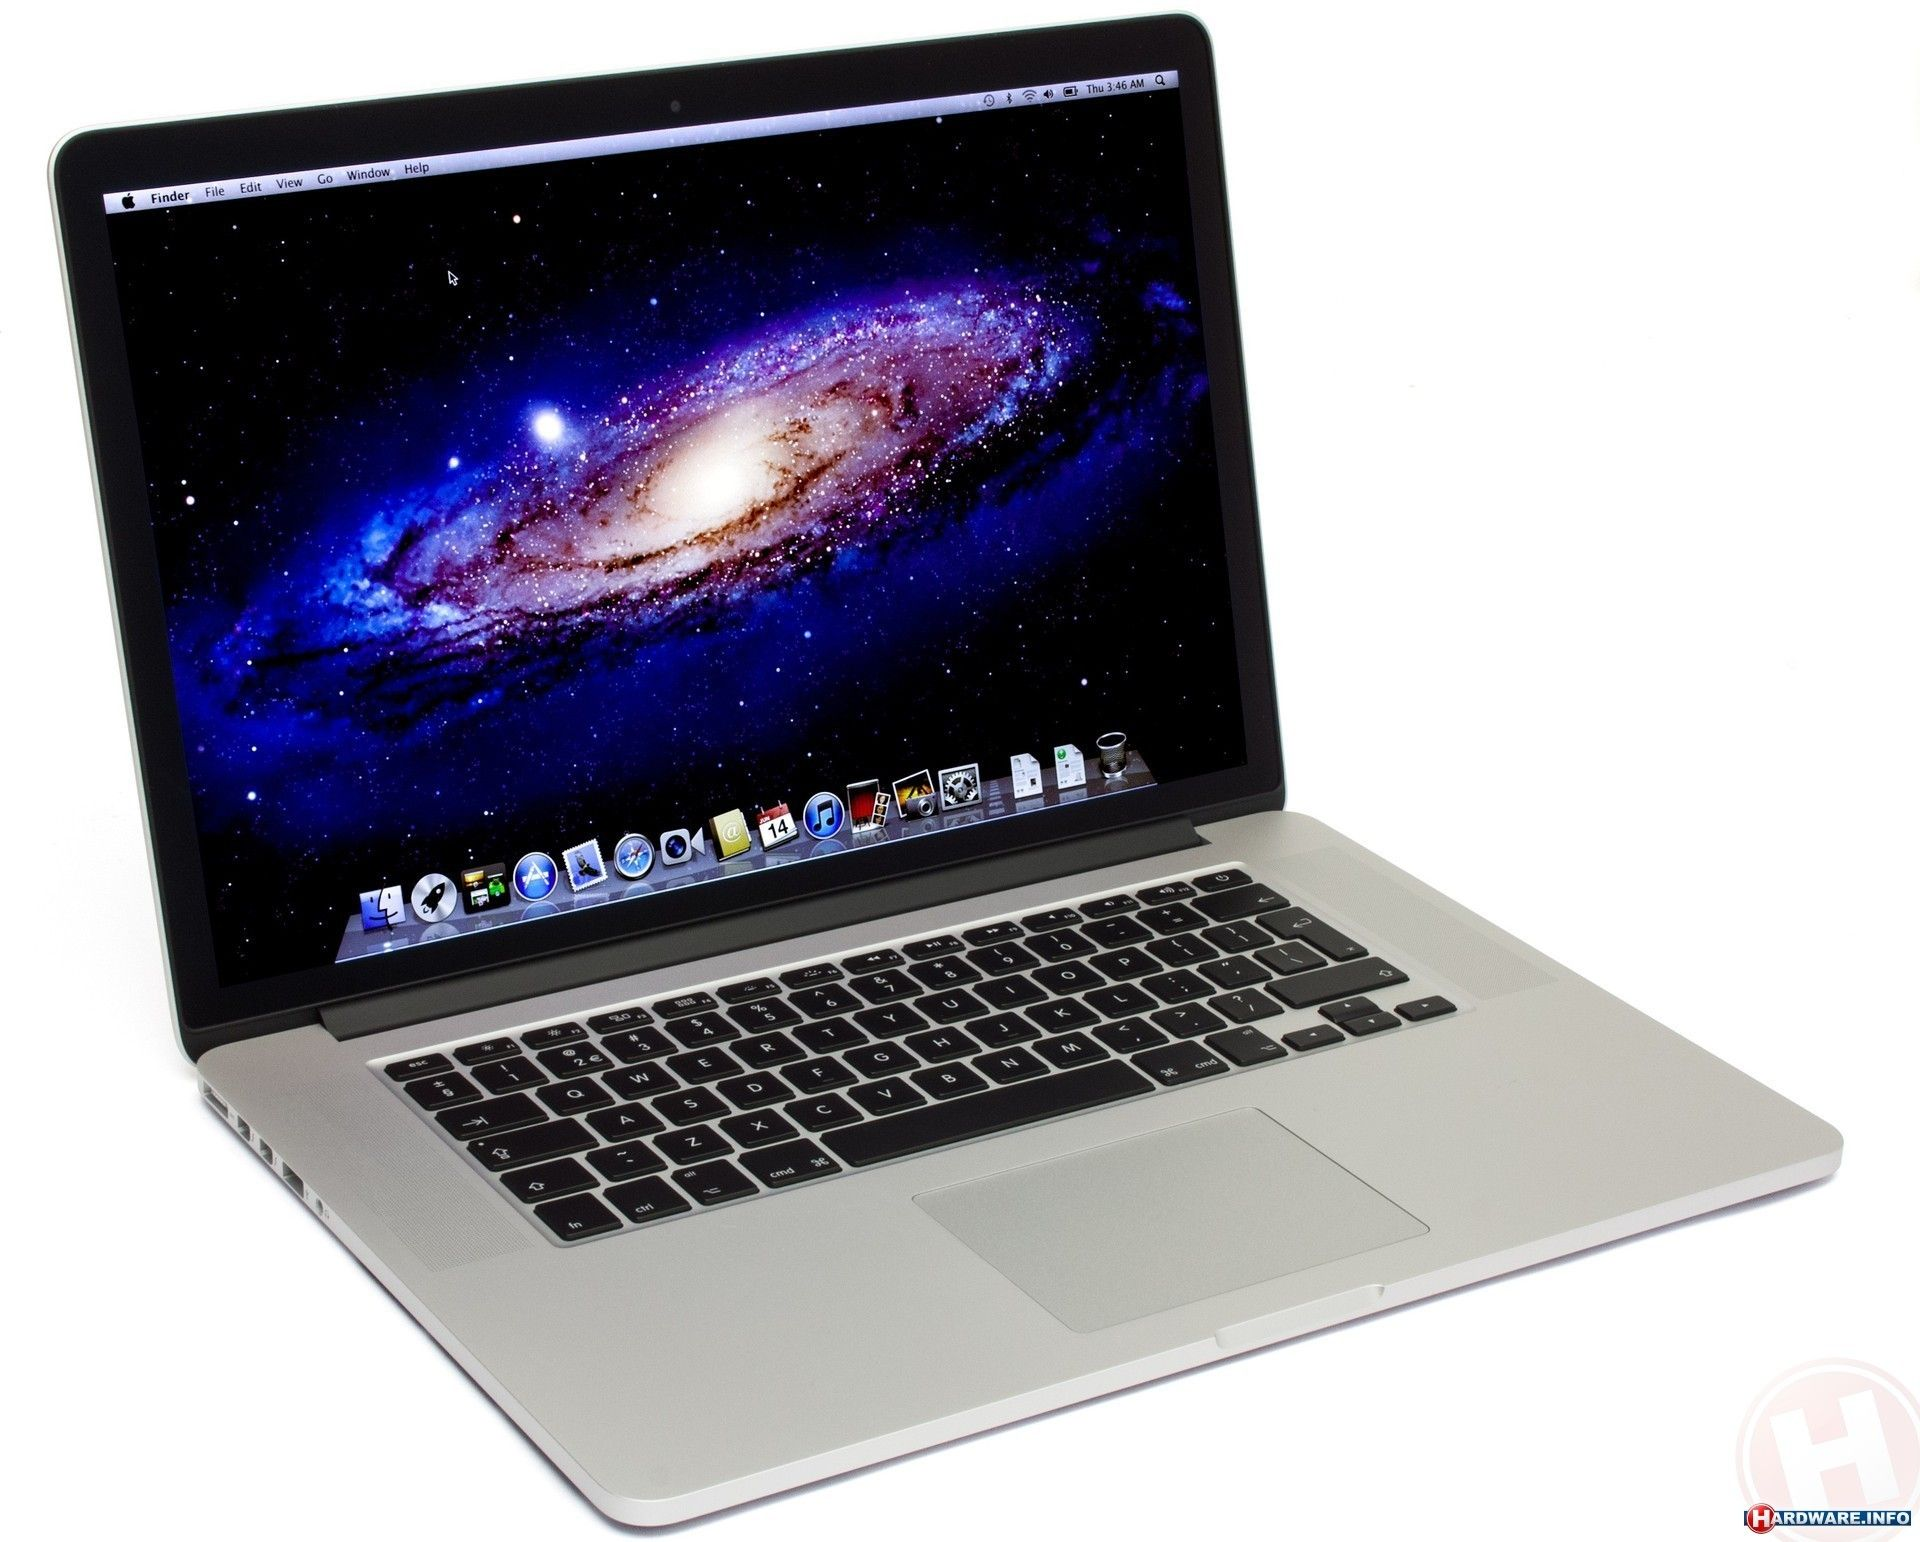 I Just Ordered  Apple Macbook Pro Retina For Work With Gb Ssd This